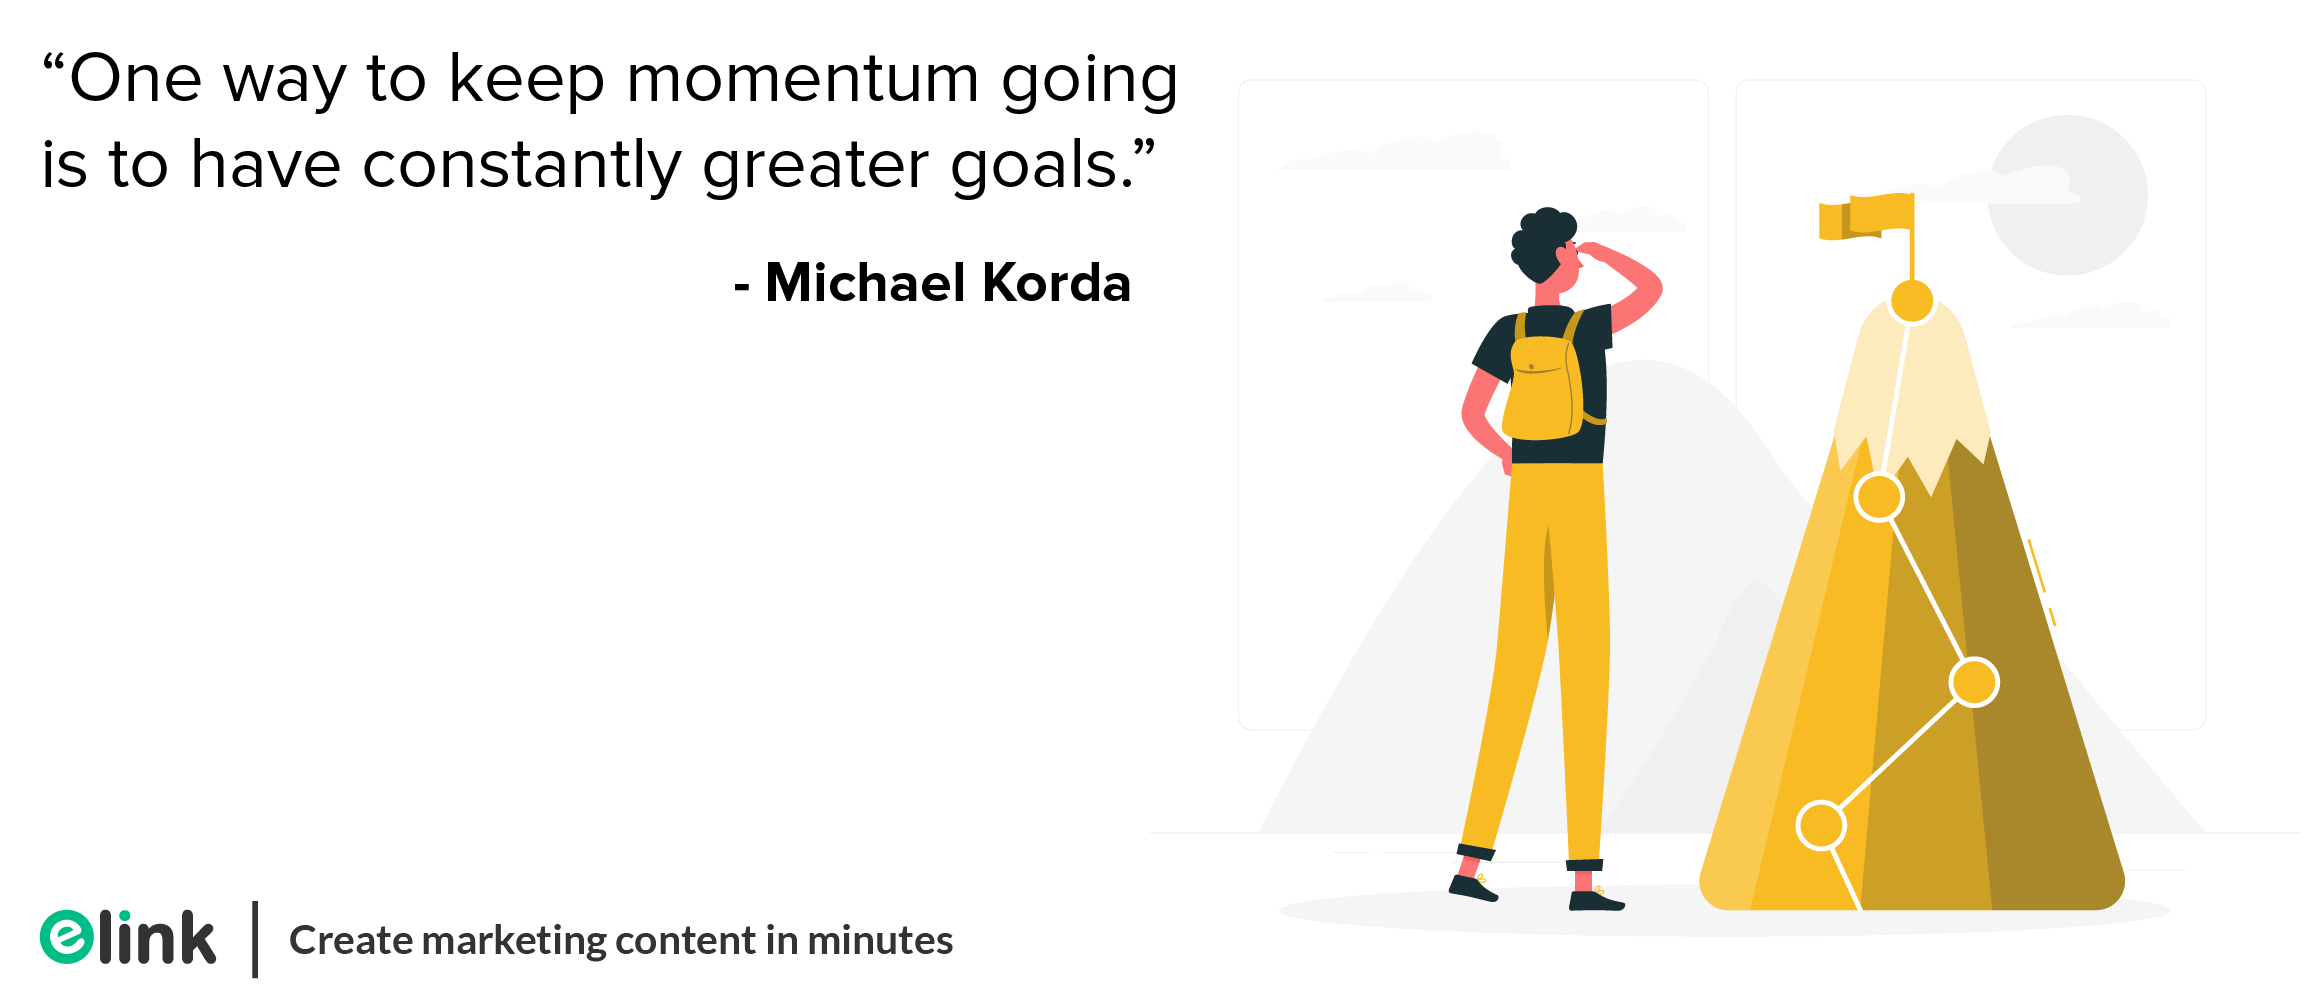 """""""One way to keep momentum going is to have constantly greater goals."""" - Michael Korda elink.io"""